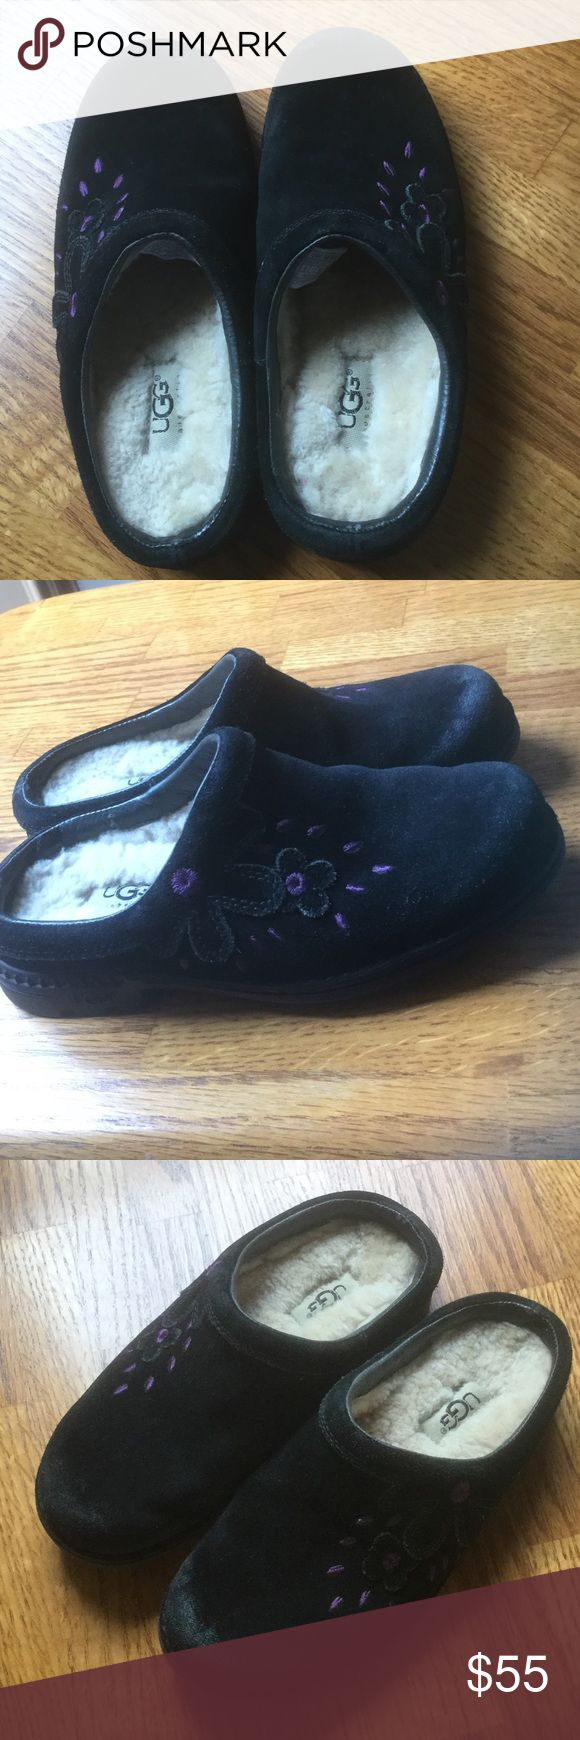 Girls UGG Clogs Excellent using condition size 2 (eu 32) leather and genuine sheepskin. Make me an offer UGG Shoes